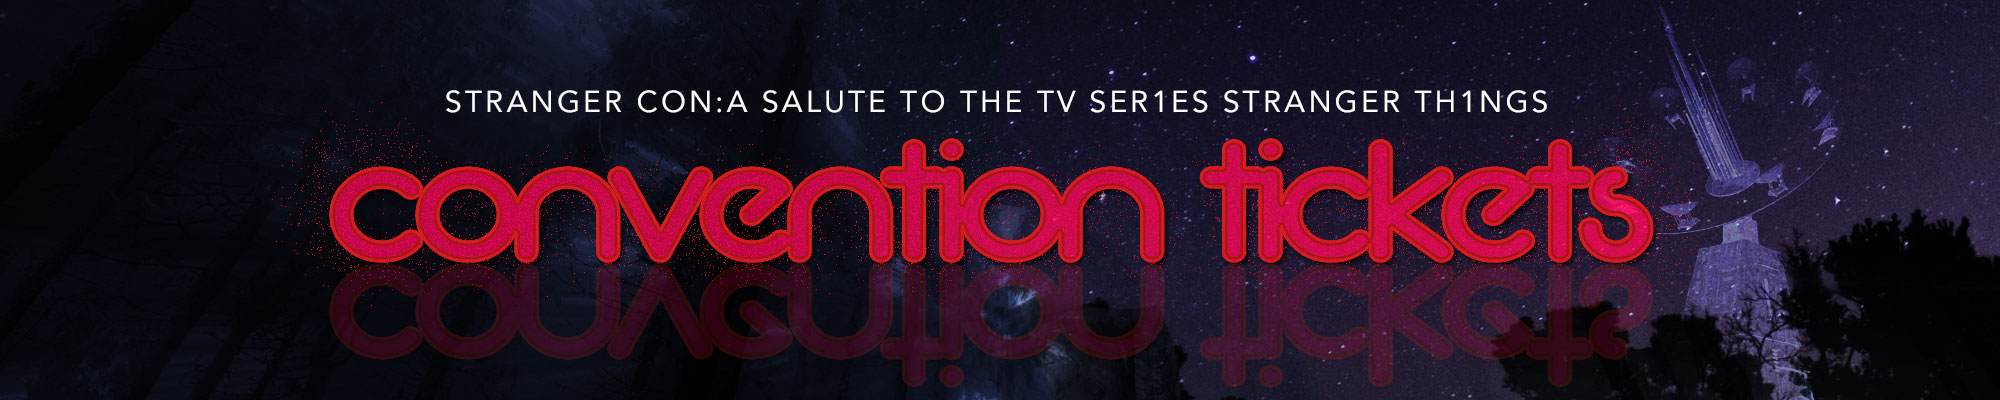 Creation Entertainment Presents Stranger Con A Salute To The Tv